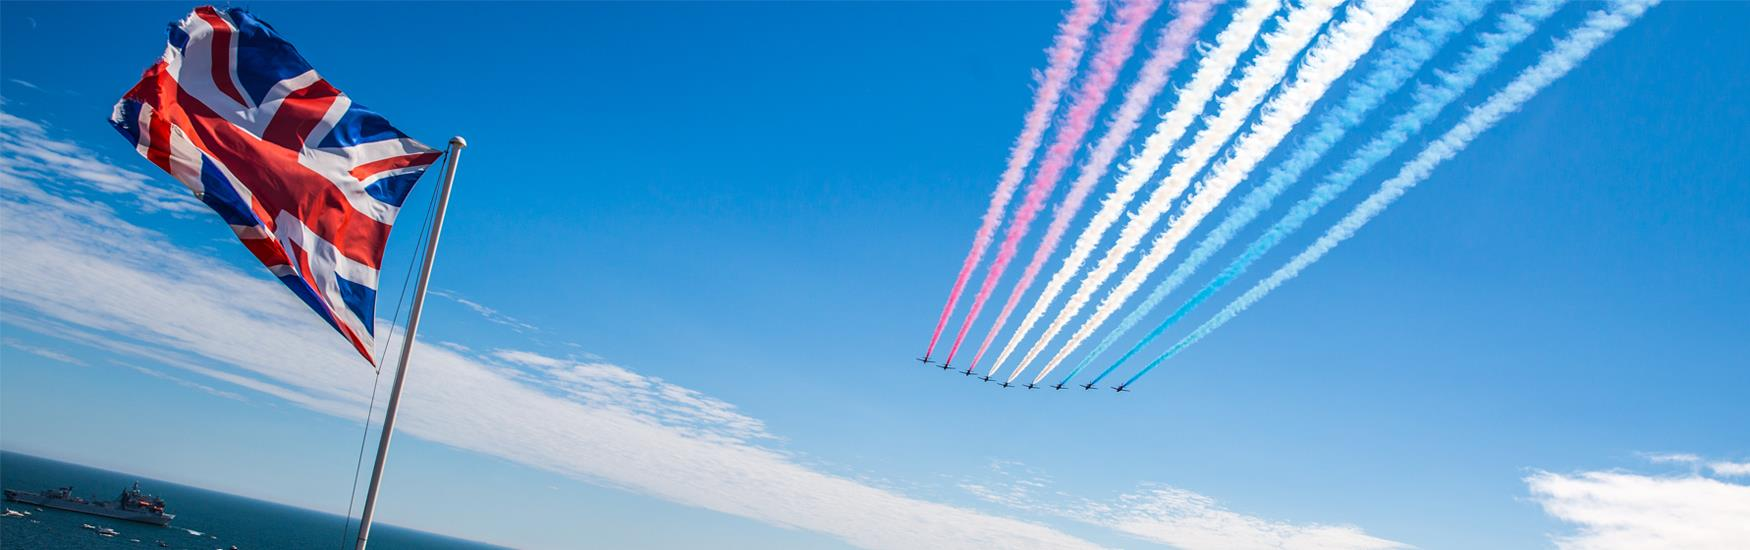 Spectacular events this summer! Such as the Bournemouth Air Festival 30 Aug - 2 Sep 2018